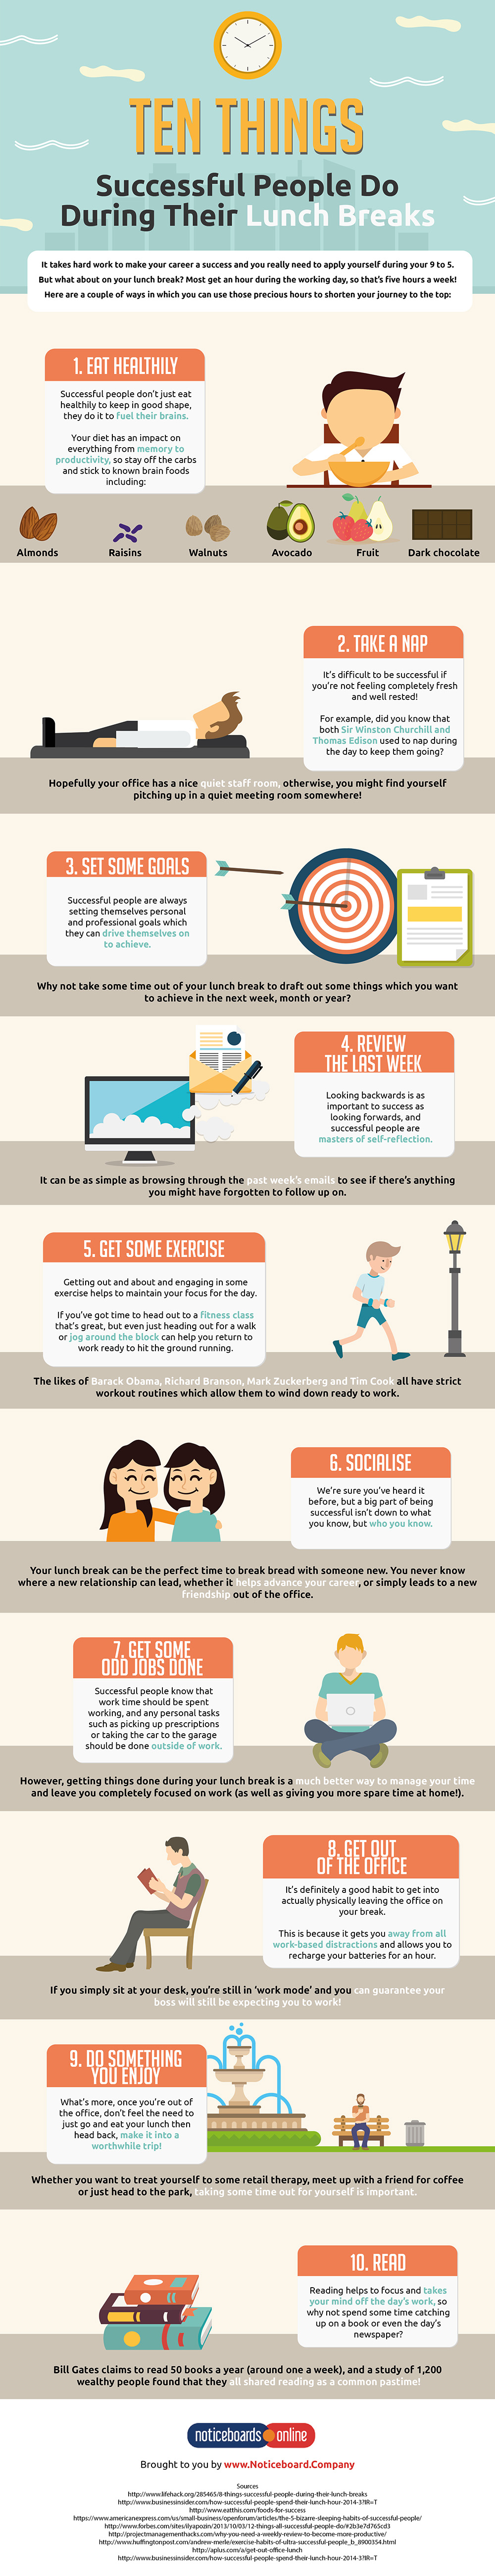 Ten Things Successful People Do During Their Lunch Breaks (INFOGRAPHIC)